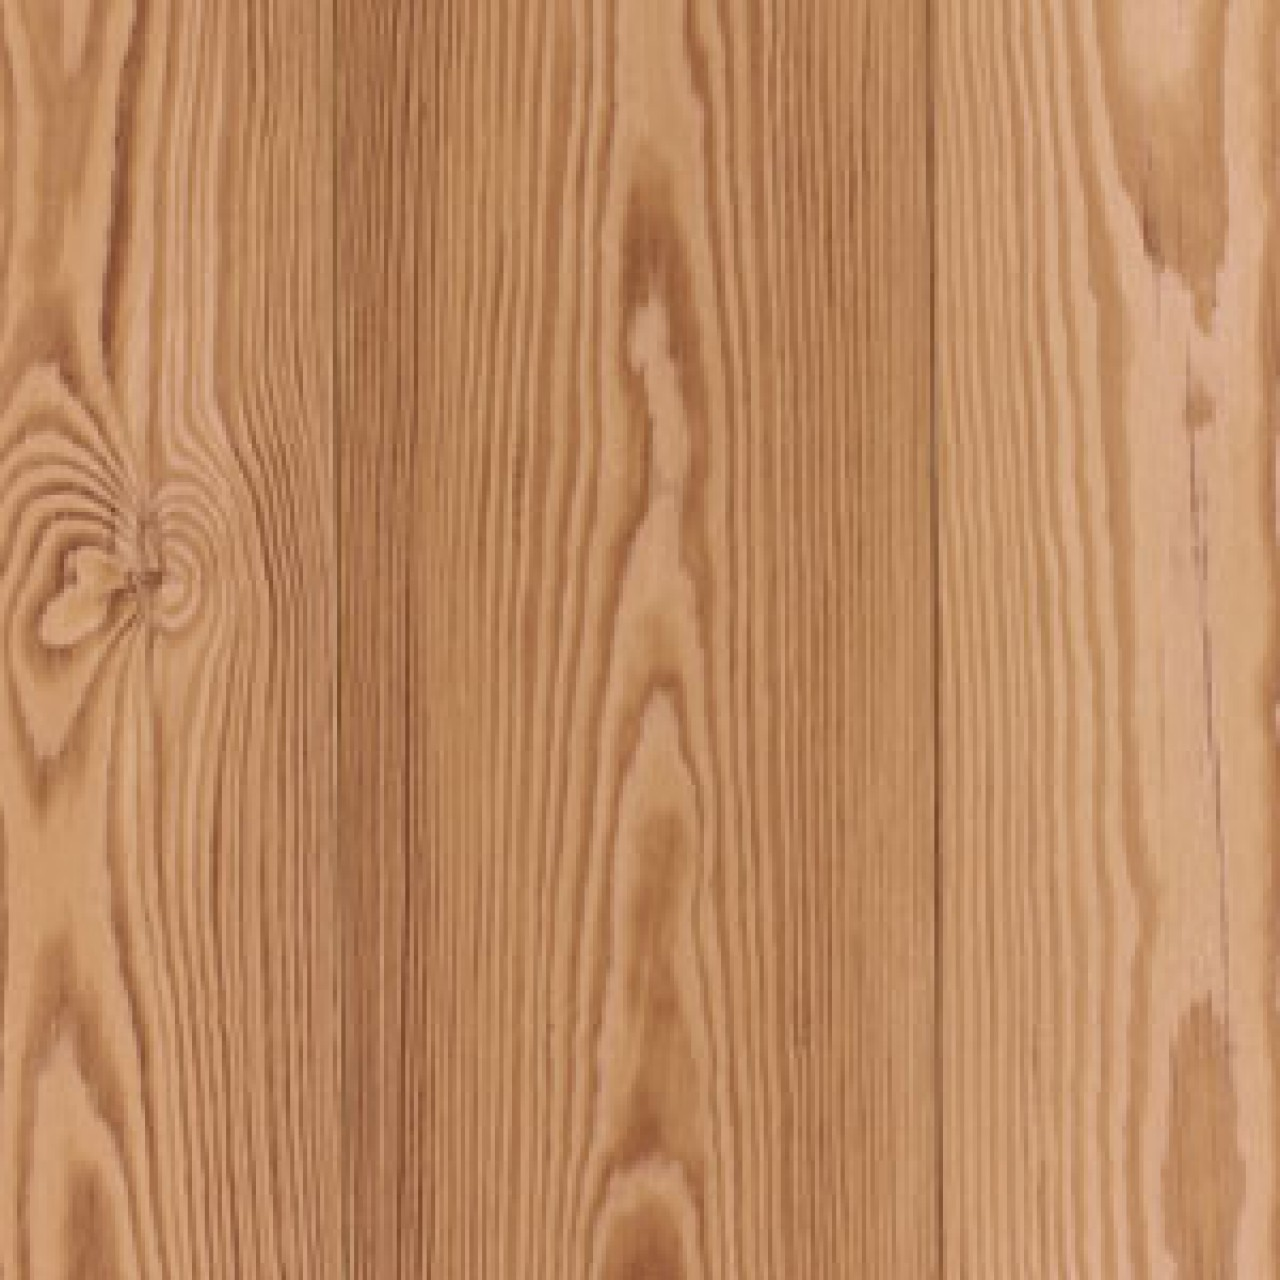 awesome grosvenor square laminate Mohawk Flooring for home ideas